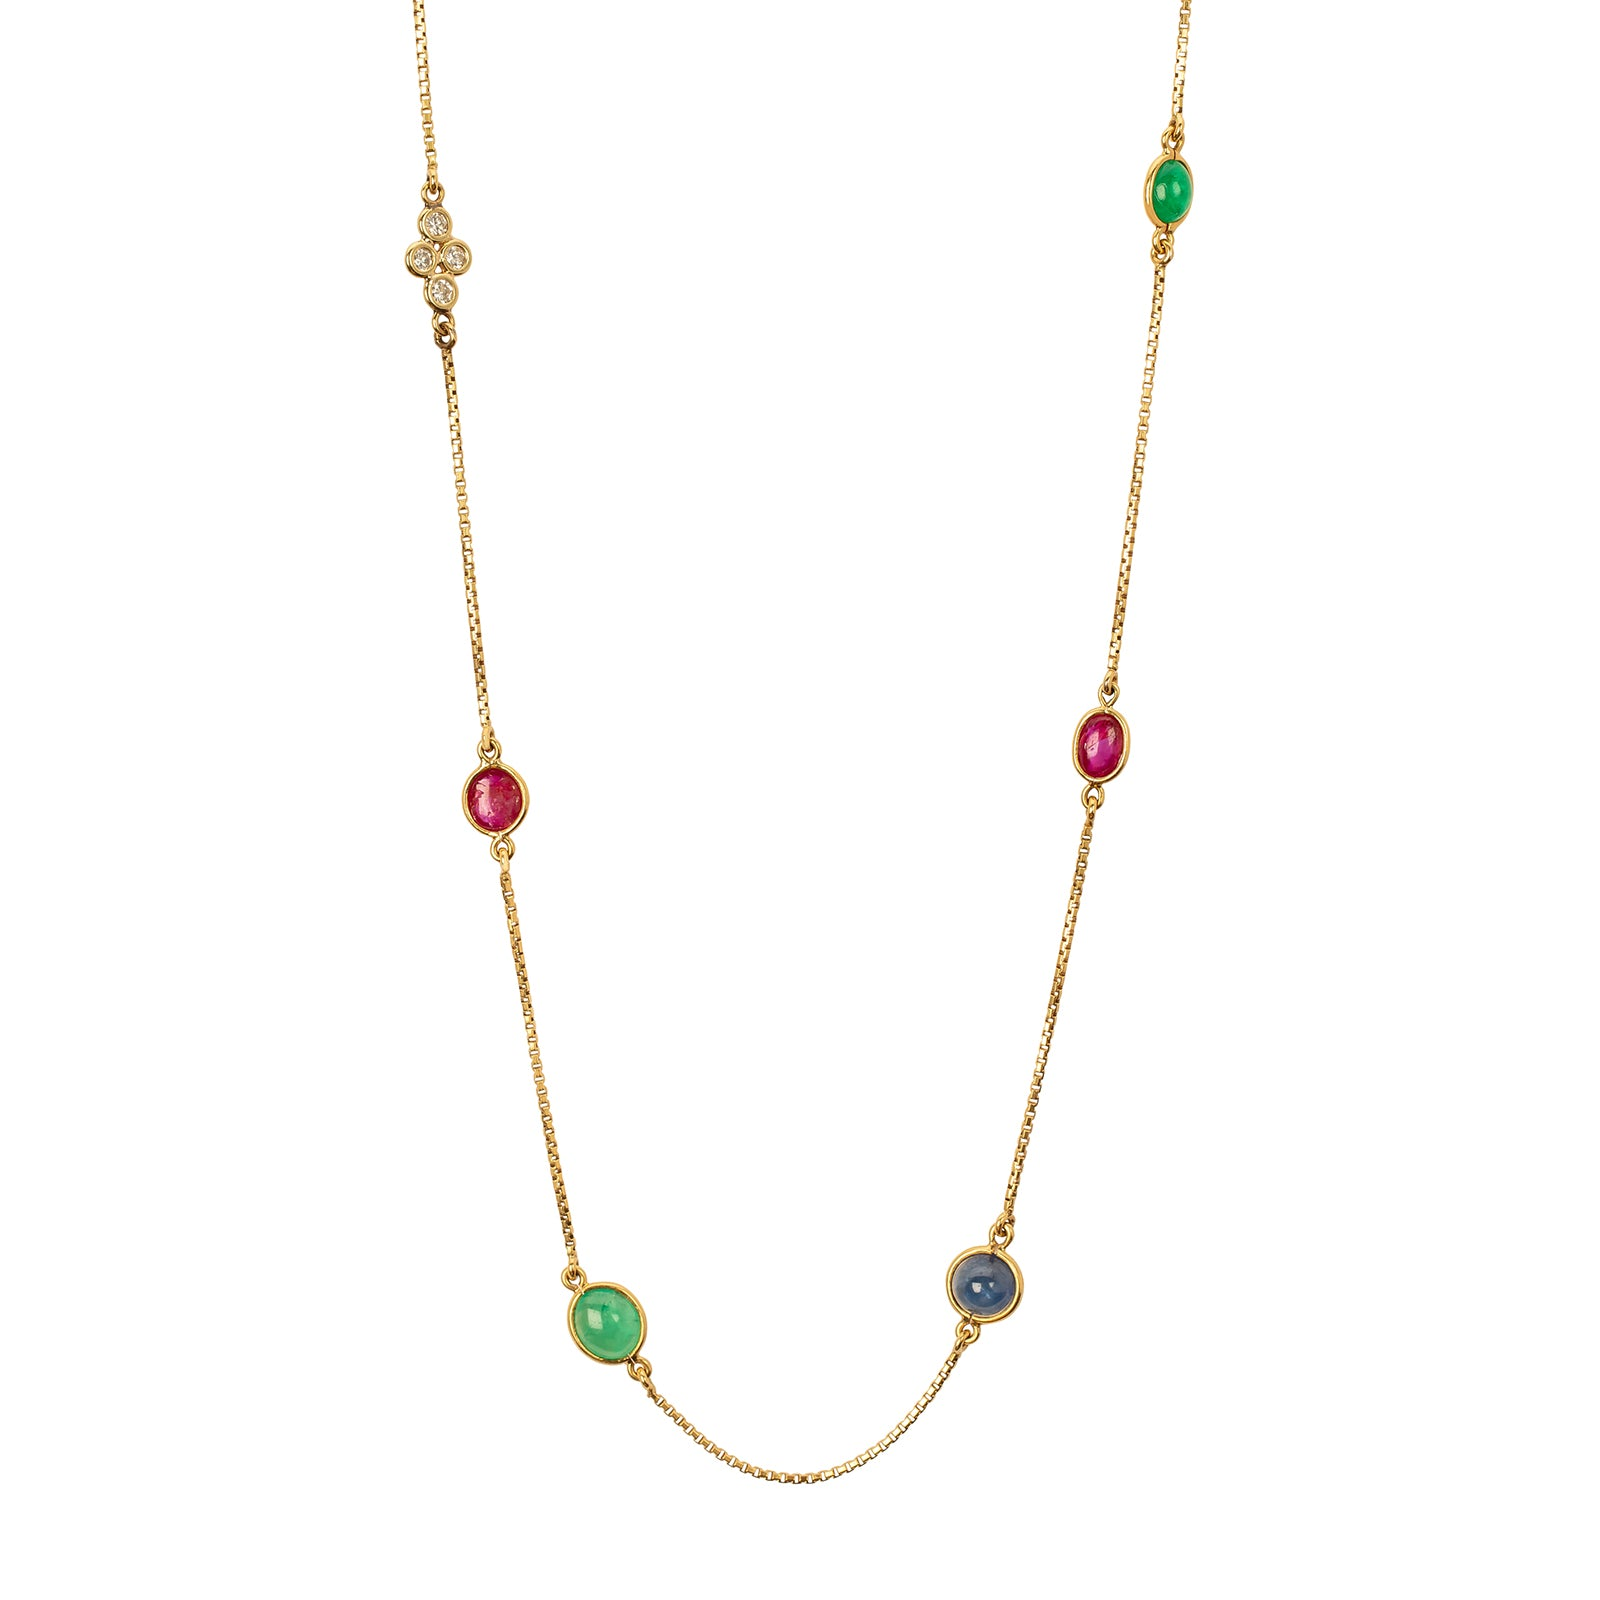 Antique & Vintage Jewelry David Webb Multi Color Gemstone Long Necklace - Necklaces - Broken English Jewelry